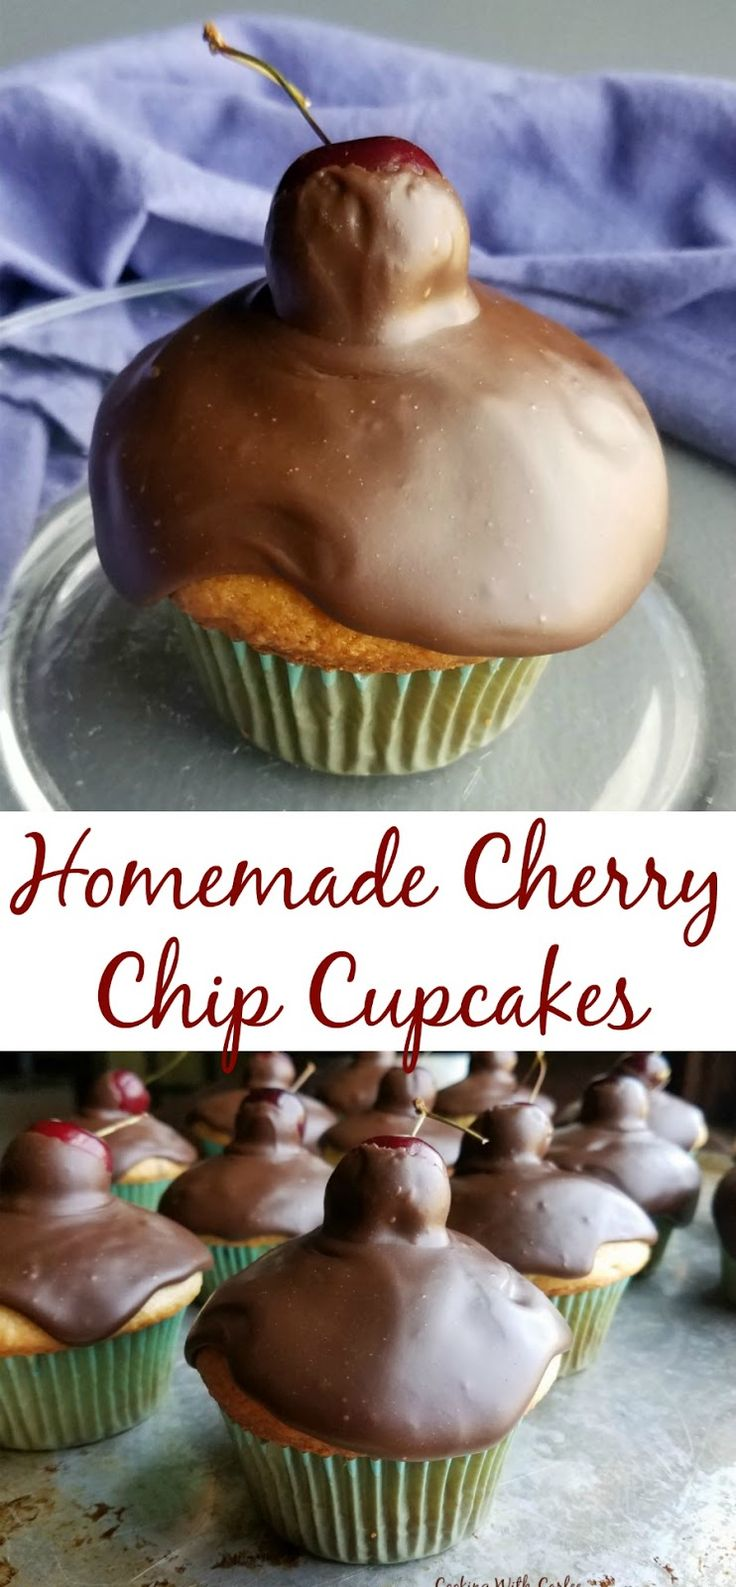 A simple homemade cake batter is full of fresh cherries and chocolate chips. These cupcakes are really easy to make and so much fun to serve!